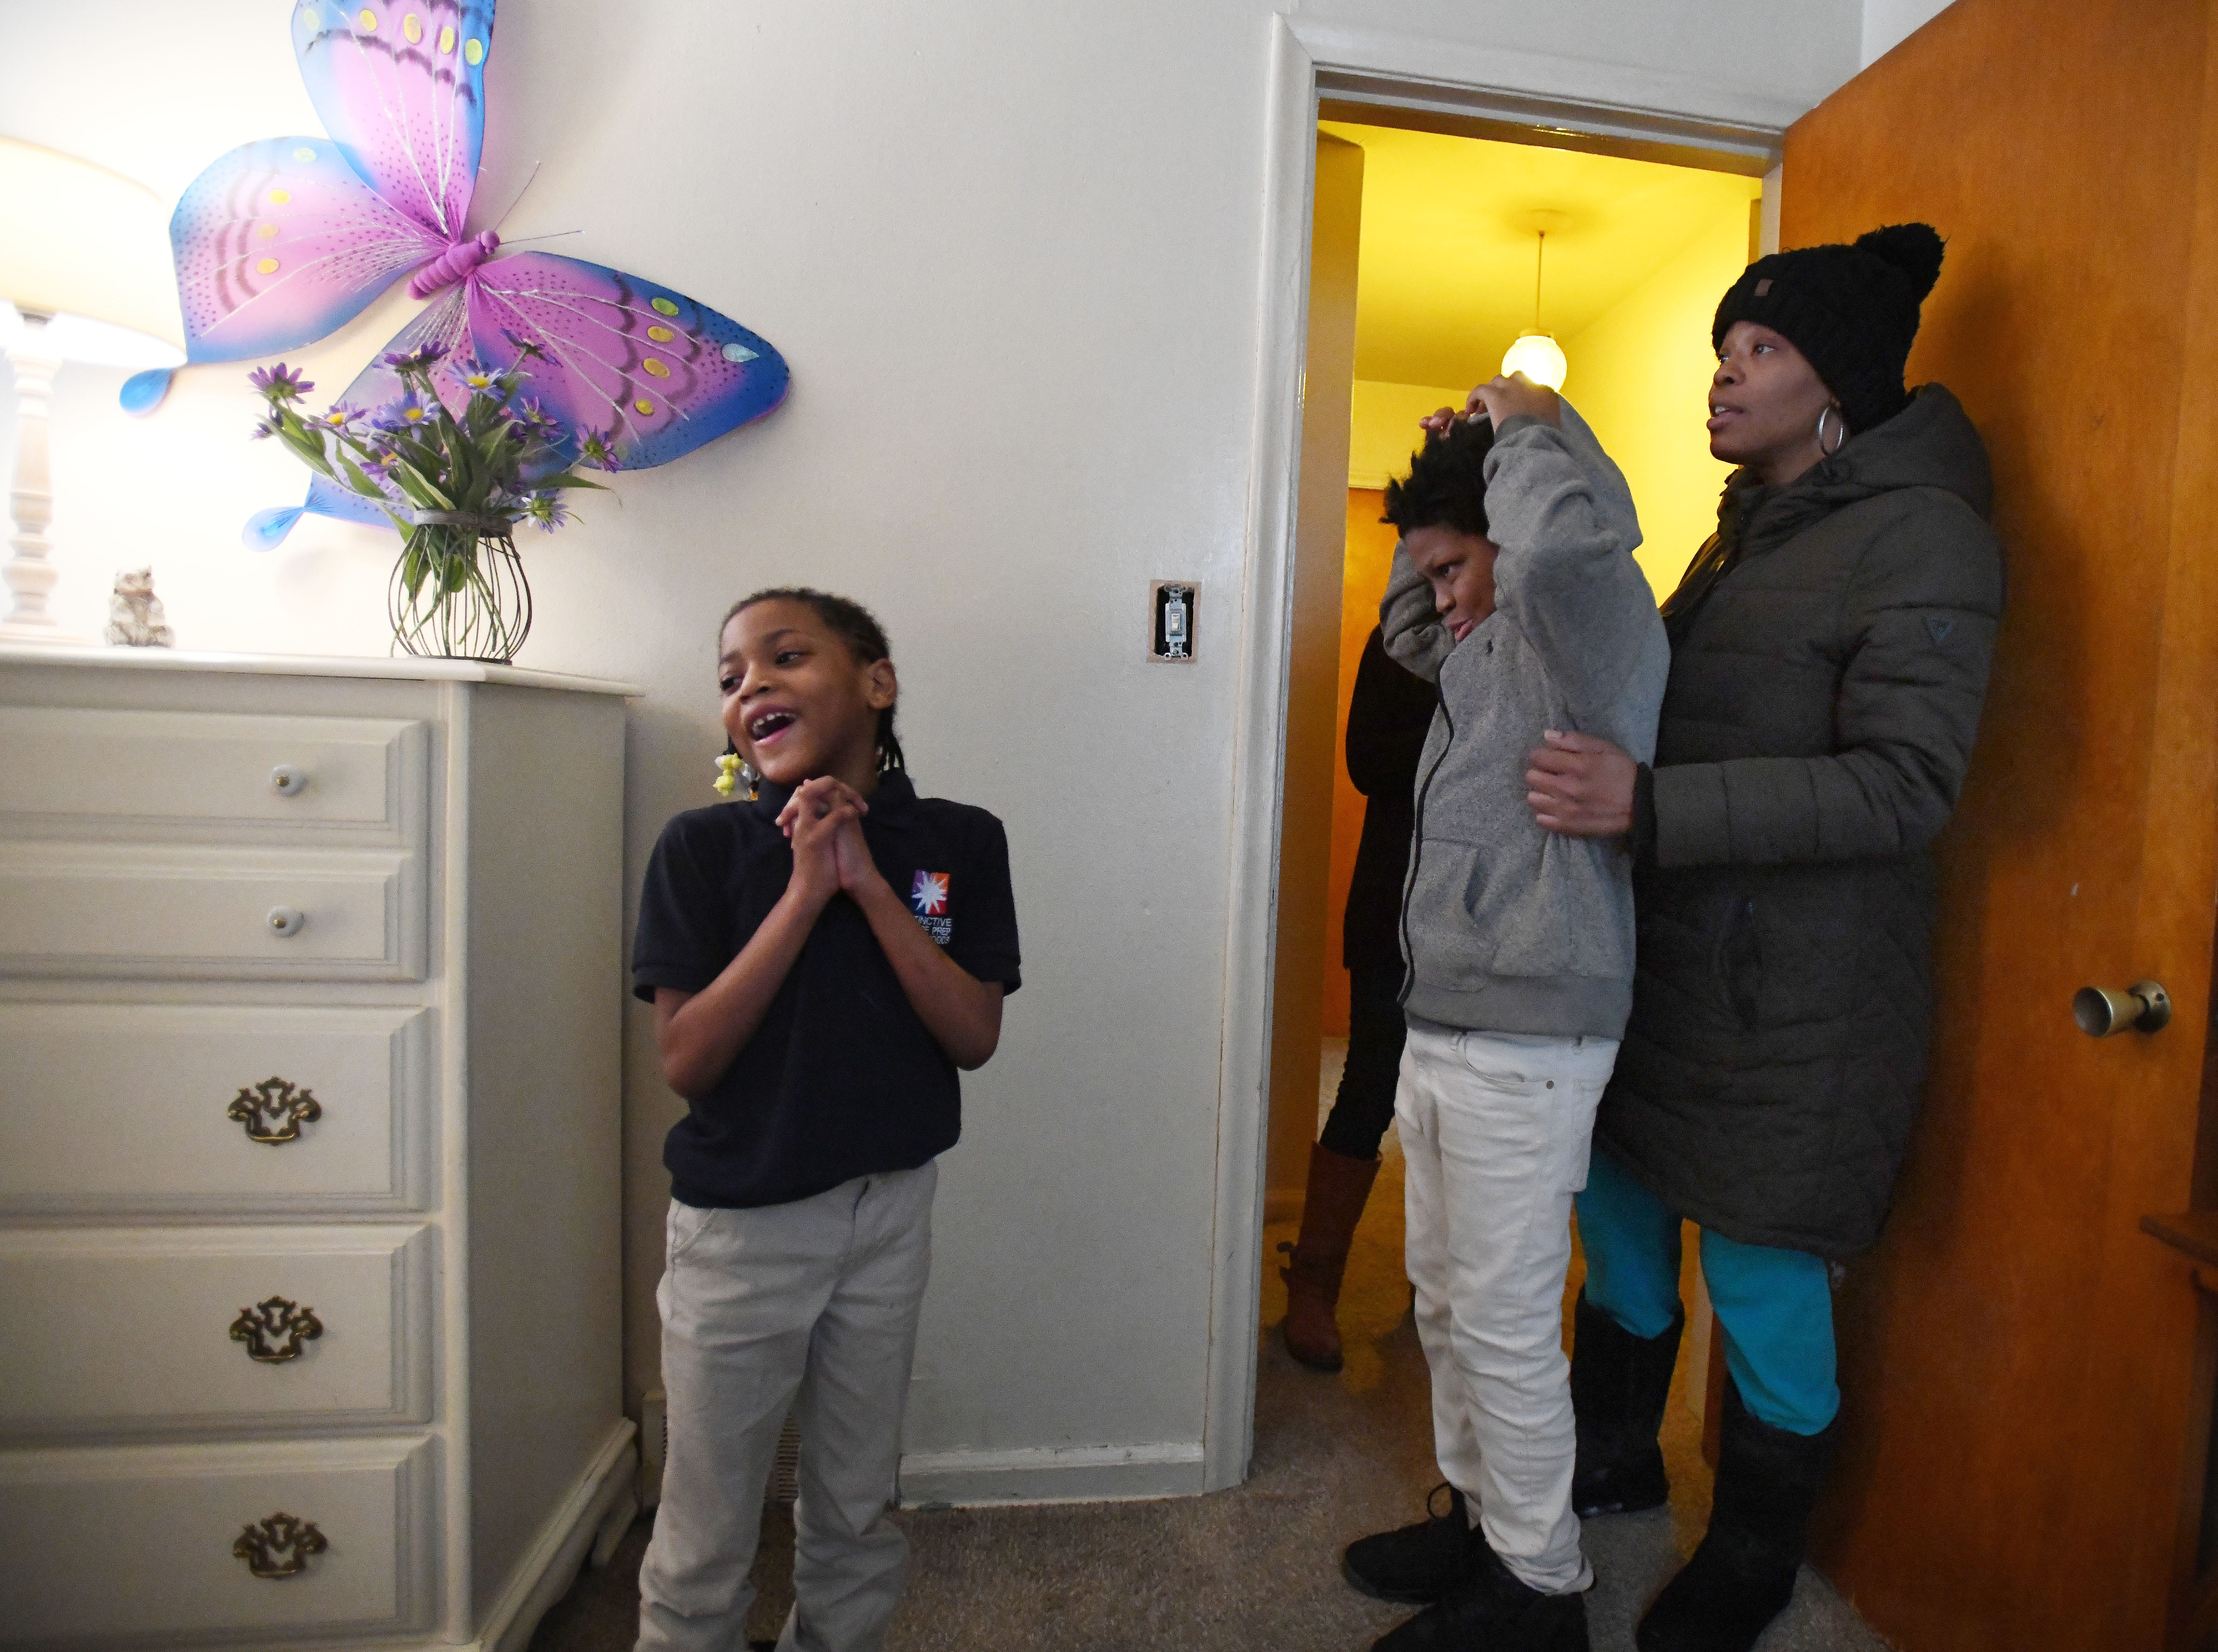 Ja'Kayla, 7, is overwhelmed by her beautiful pink and purple room as her  brother Jai'Vonte, 12, and mother Jamiliah Powers-McCoy stand in the doorway.